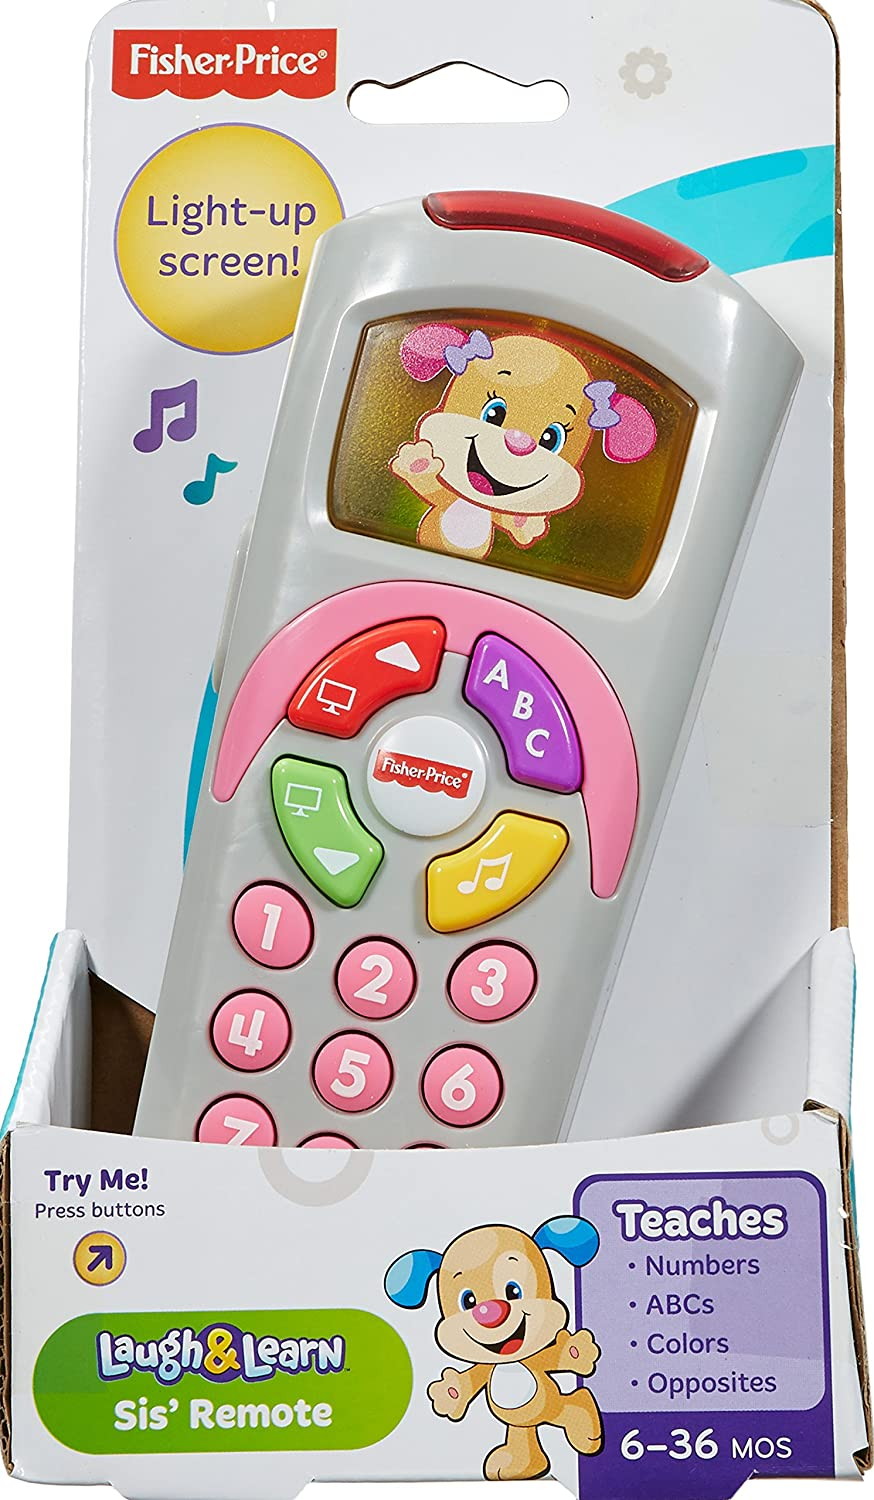 White BFK69 Fisher-Price Laugh /& Learn Smart Phone